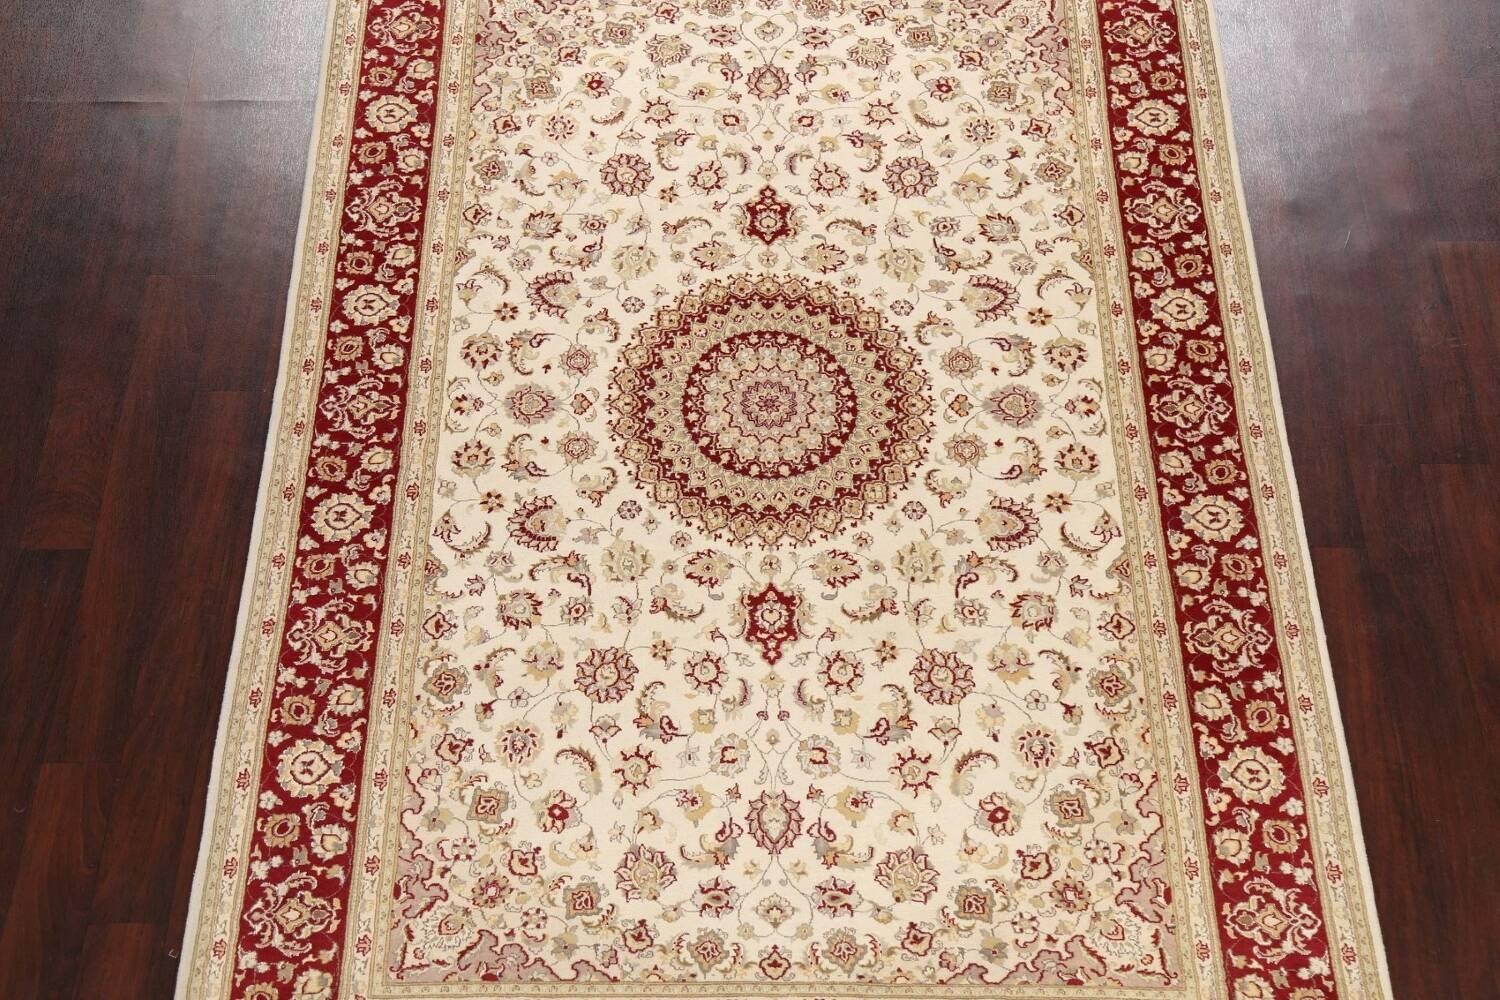 100% Vegetable Dye Floral Tabriz Oriental Area Rug 6x9 image 3